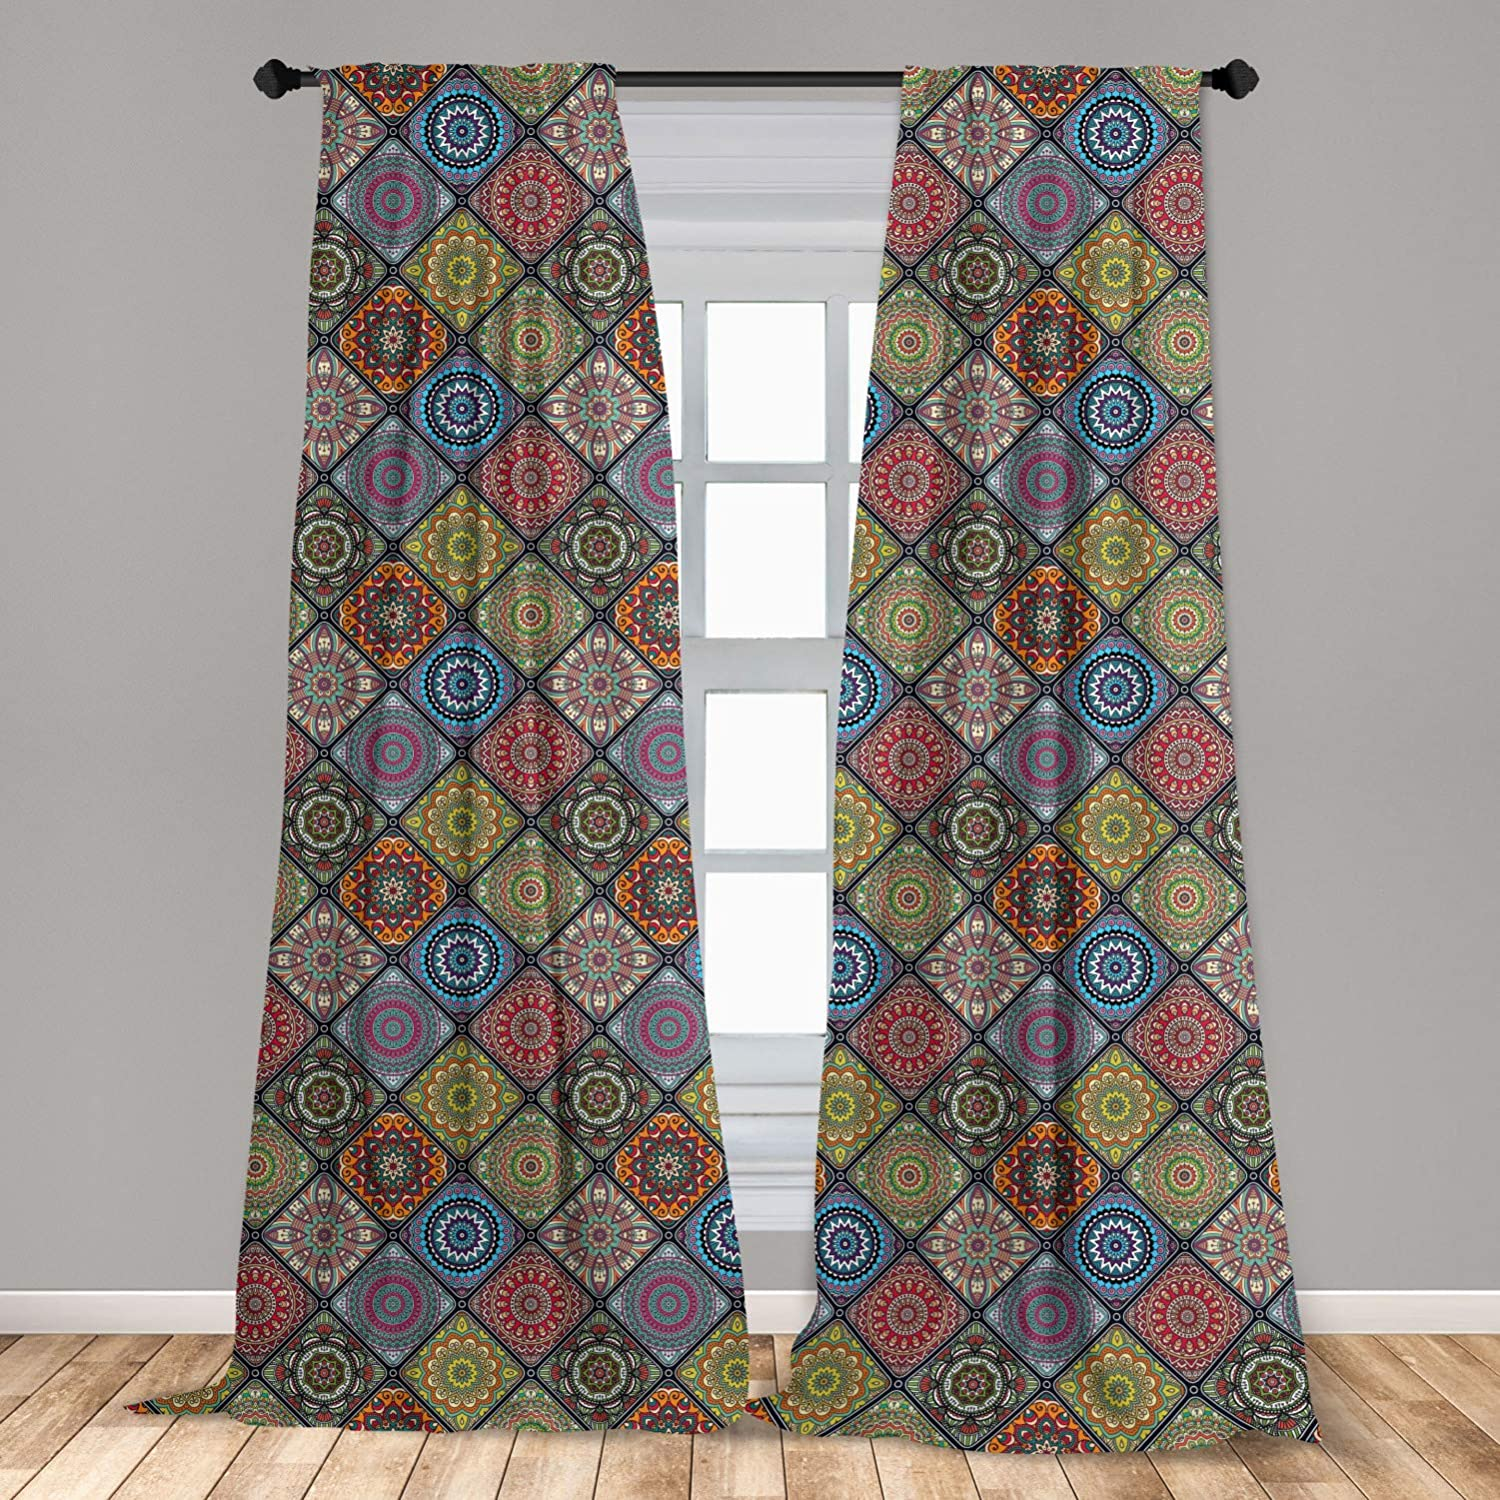 Ambesonne Mandala Curtains, Checkered Rectangles Pattern Various Oriental Inspired Motifs Culture, Window Treatments 2 Panel Set for Living Room Bedroom Decor, 56